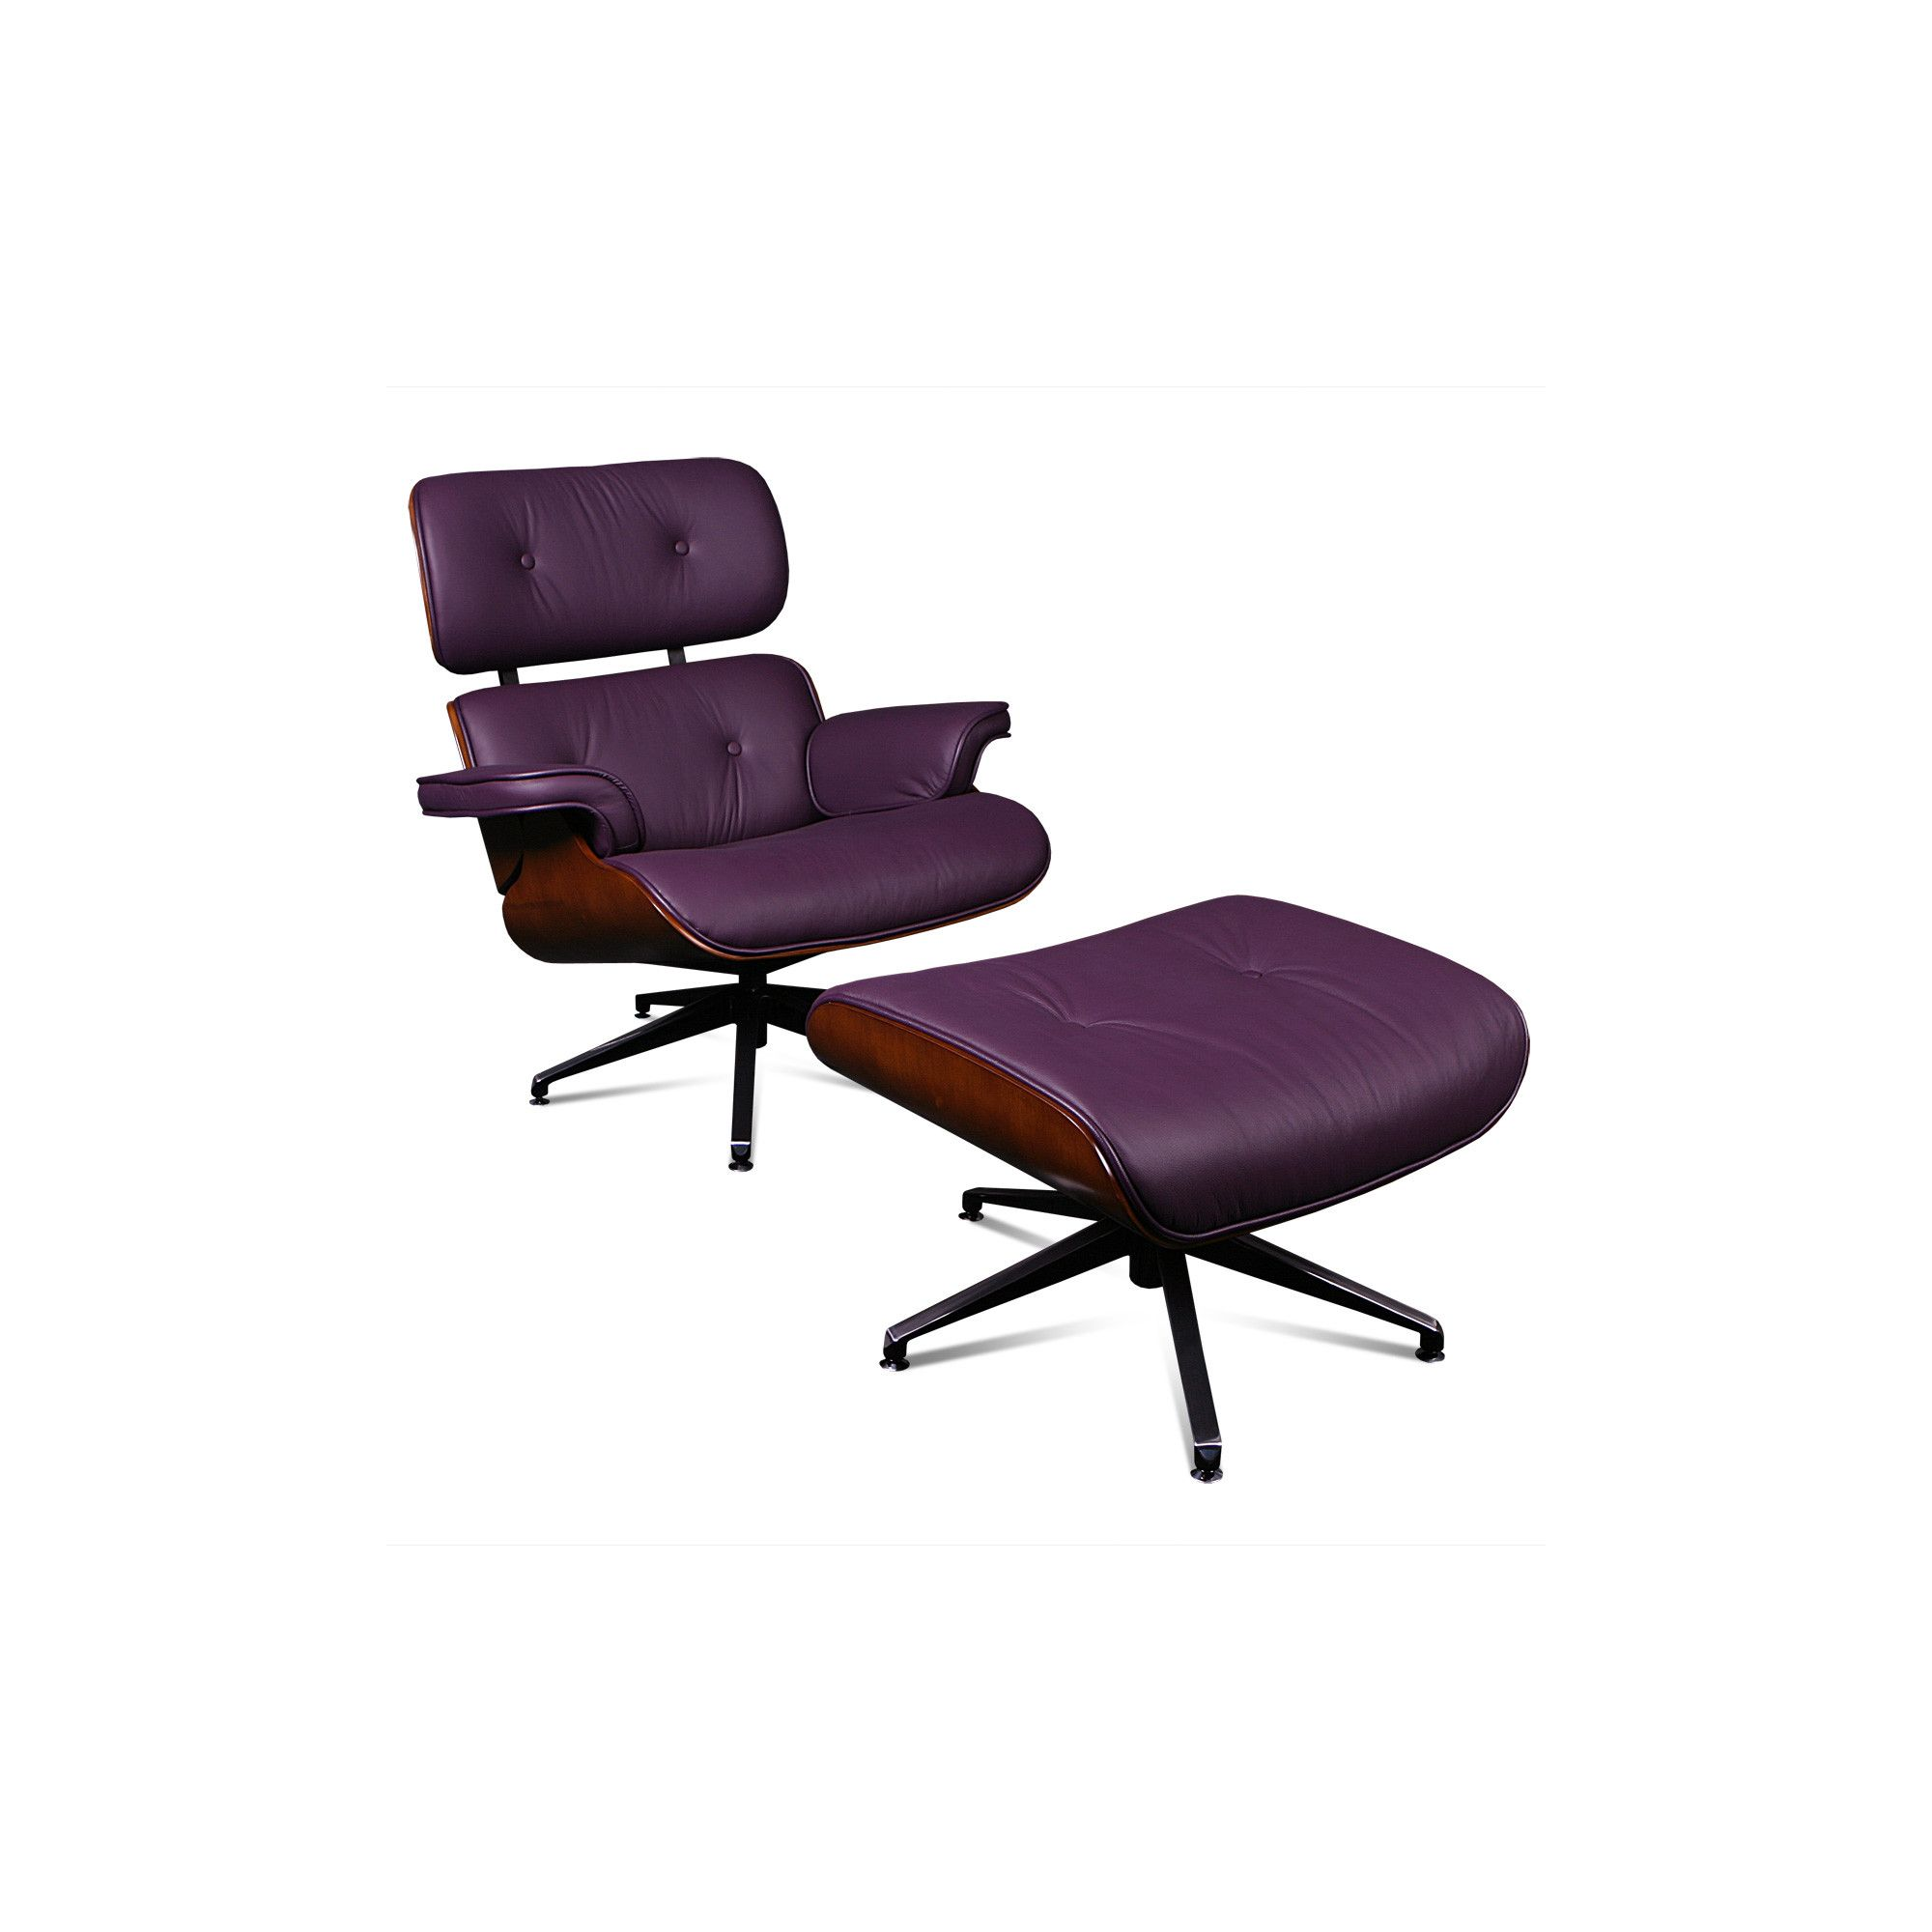 ProMech Racing Classic Leather Lounge Chair and Ottoman - Plum